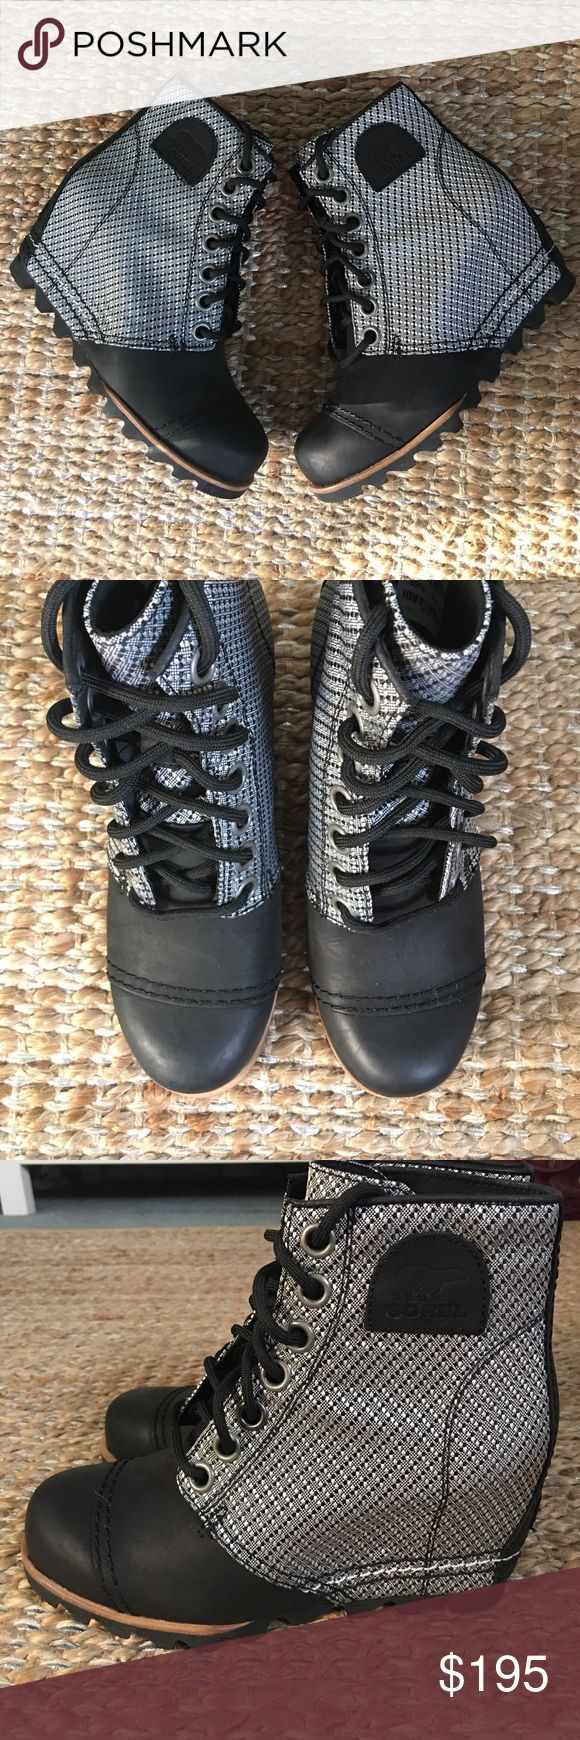 Sorel Wedge Boots Gorgeous, brand new without tags, never worn, Sorel boots. These boots are so versatile and SUPER comfortable. These are a must have in every closet! Sorel Shoes Lace Up Boots